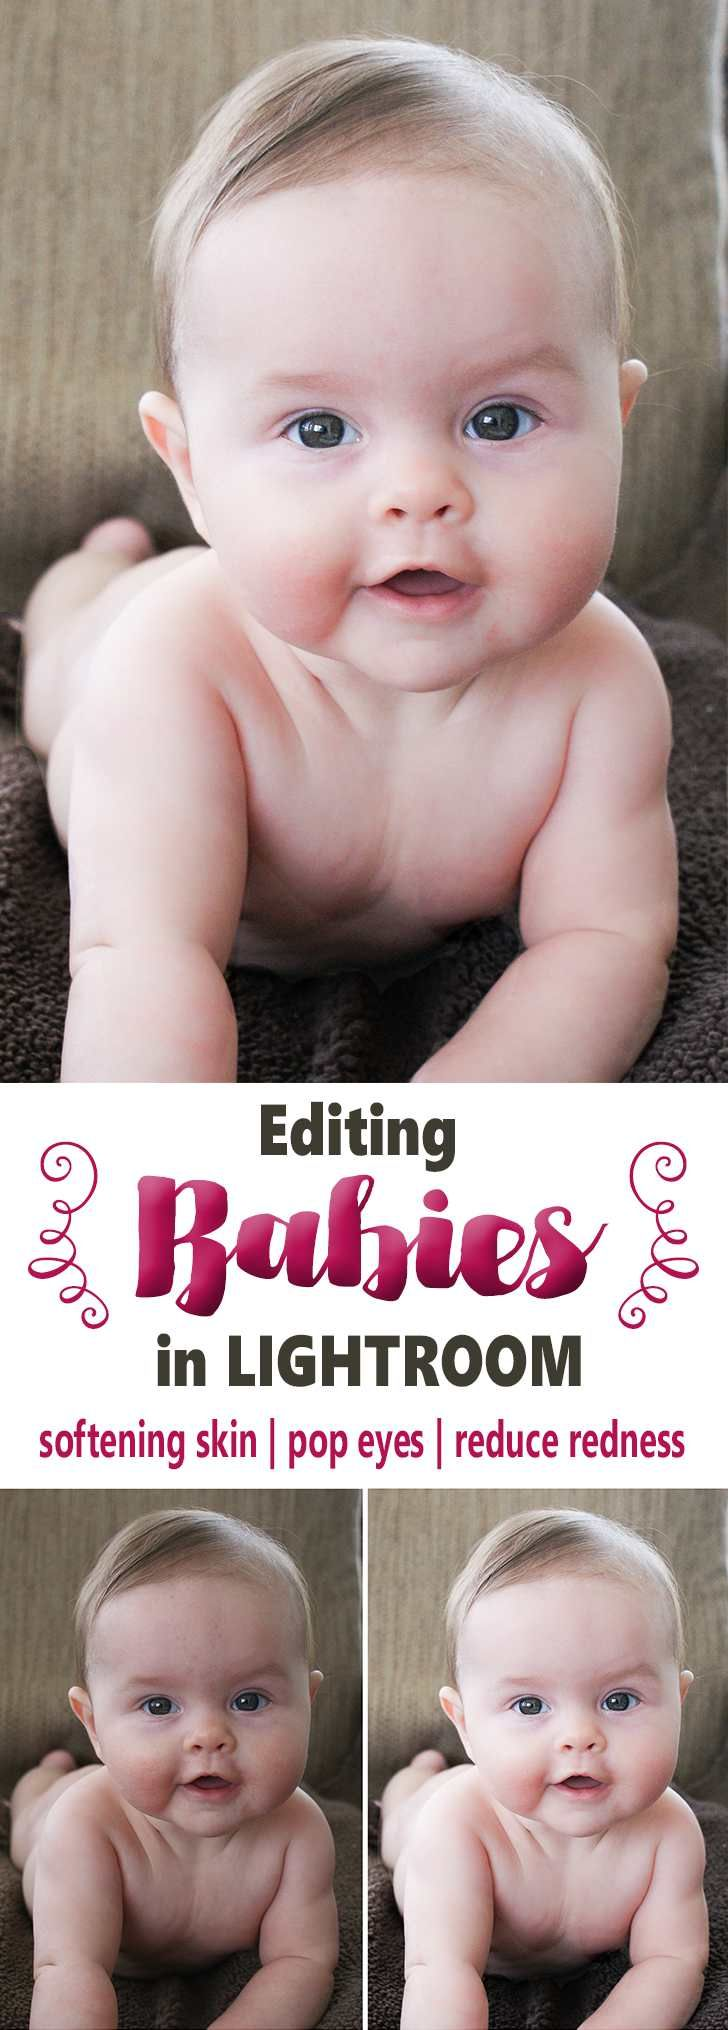 Editing Babies in Lightroom | Softening Skin | Reducing Redness | Pop Eyes